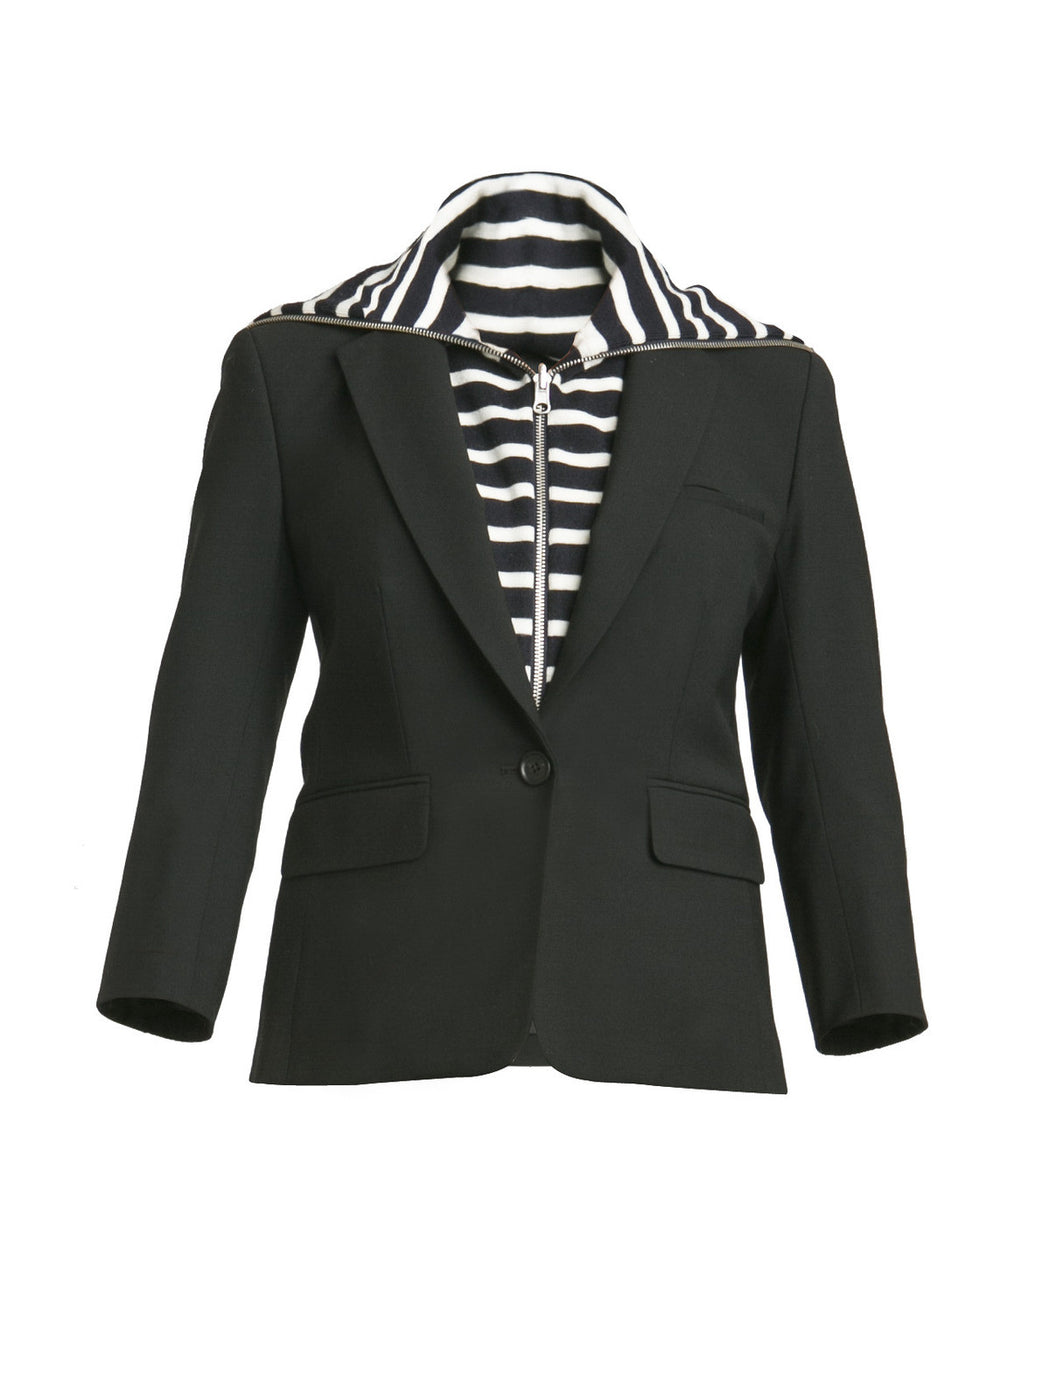 Veronica Beard School Boy Jacket With White & Navy Striped Dickey